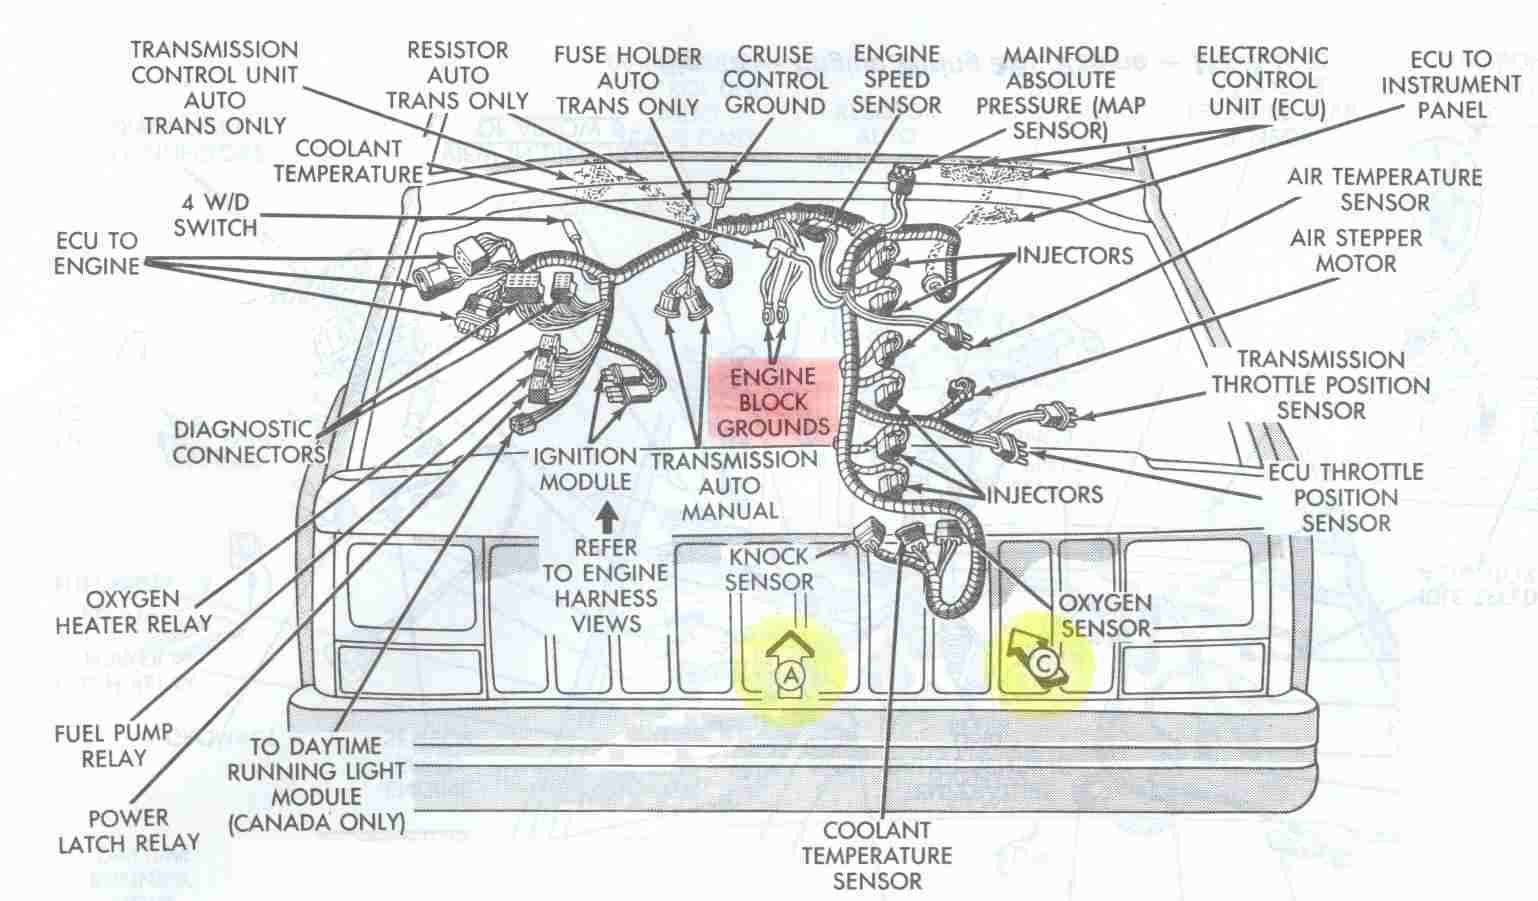 ab0134a7d9e021431187af597eb4aeca engine bay schematic showing major electrical ground points for 2004 jeep wrangler engine diagram at fashall.co